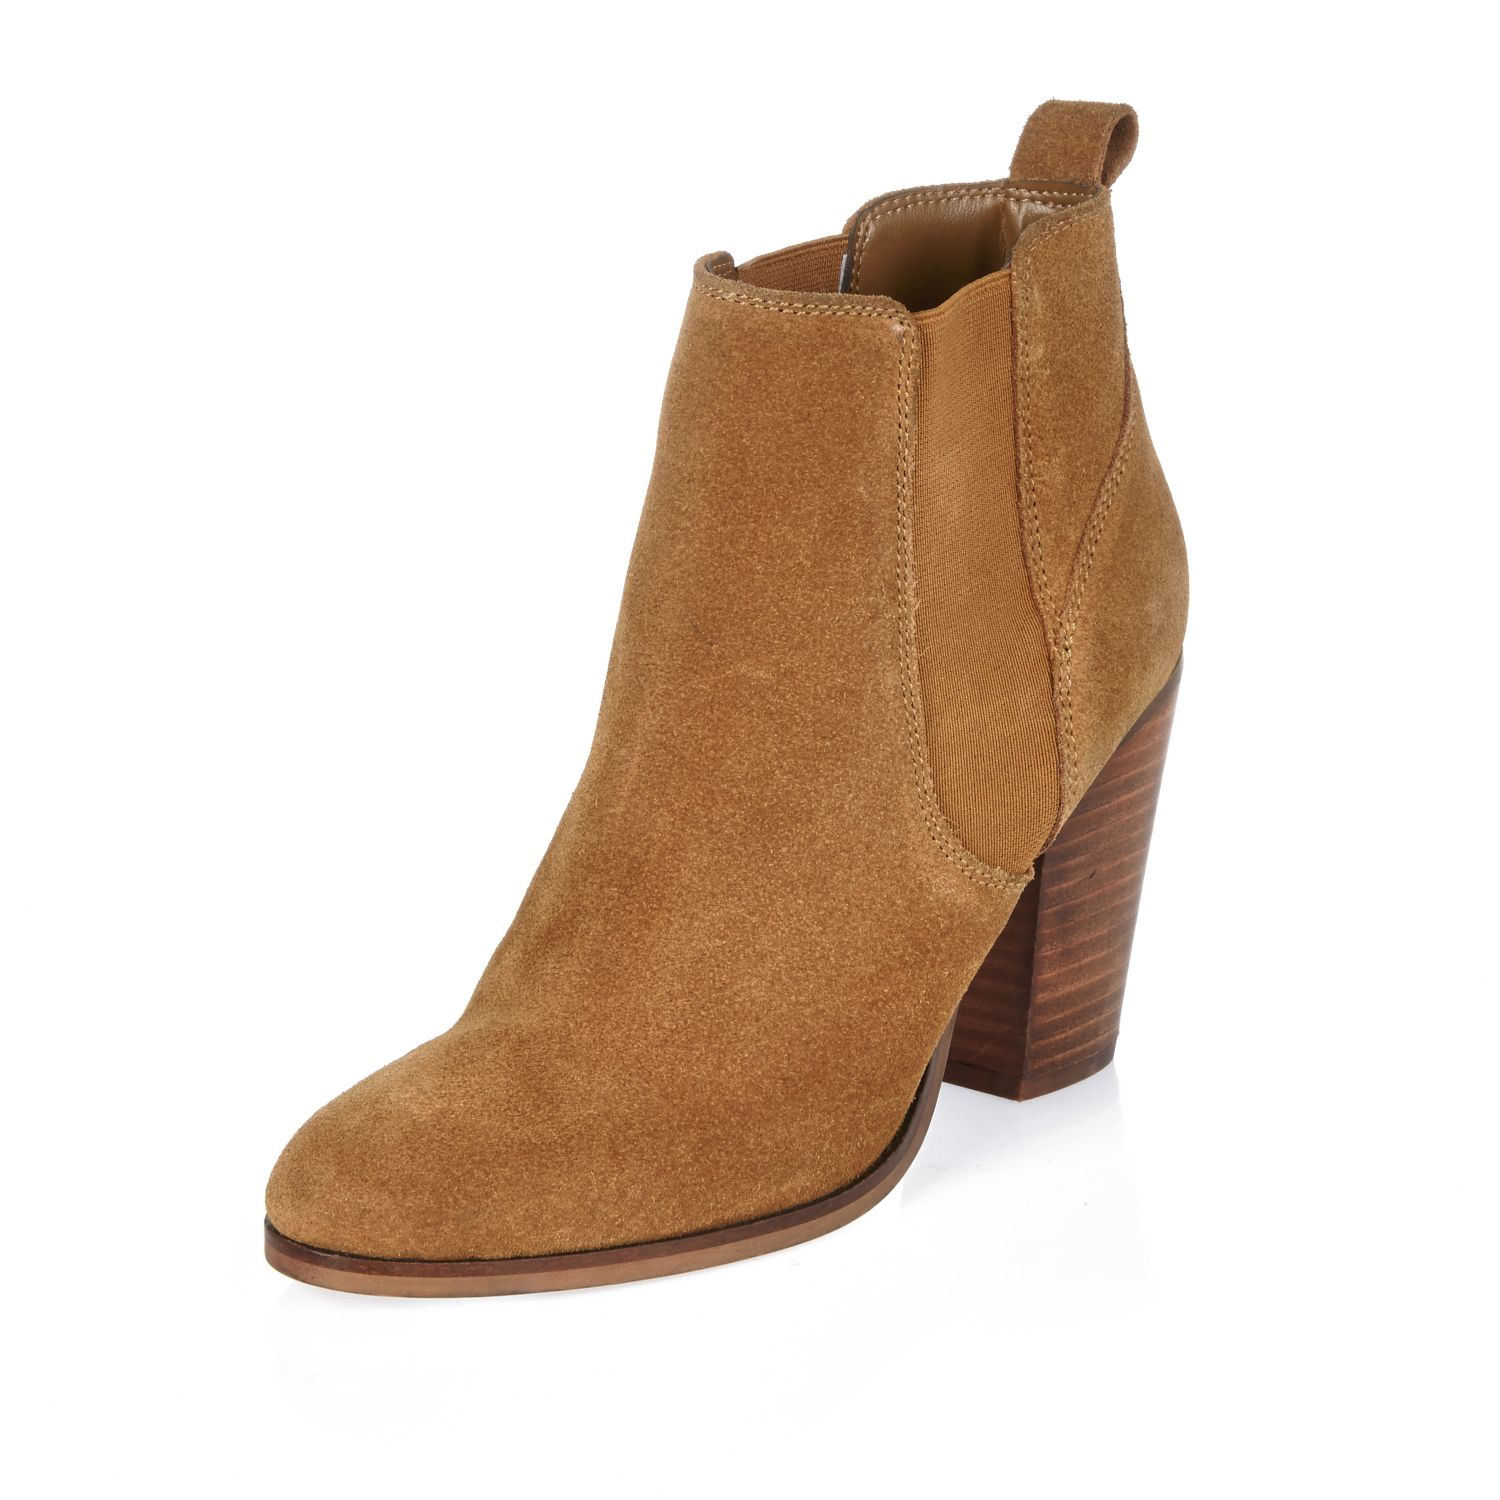 River island Tan Suede Heeled Ankle Boots in Brown | Lyst